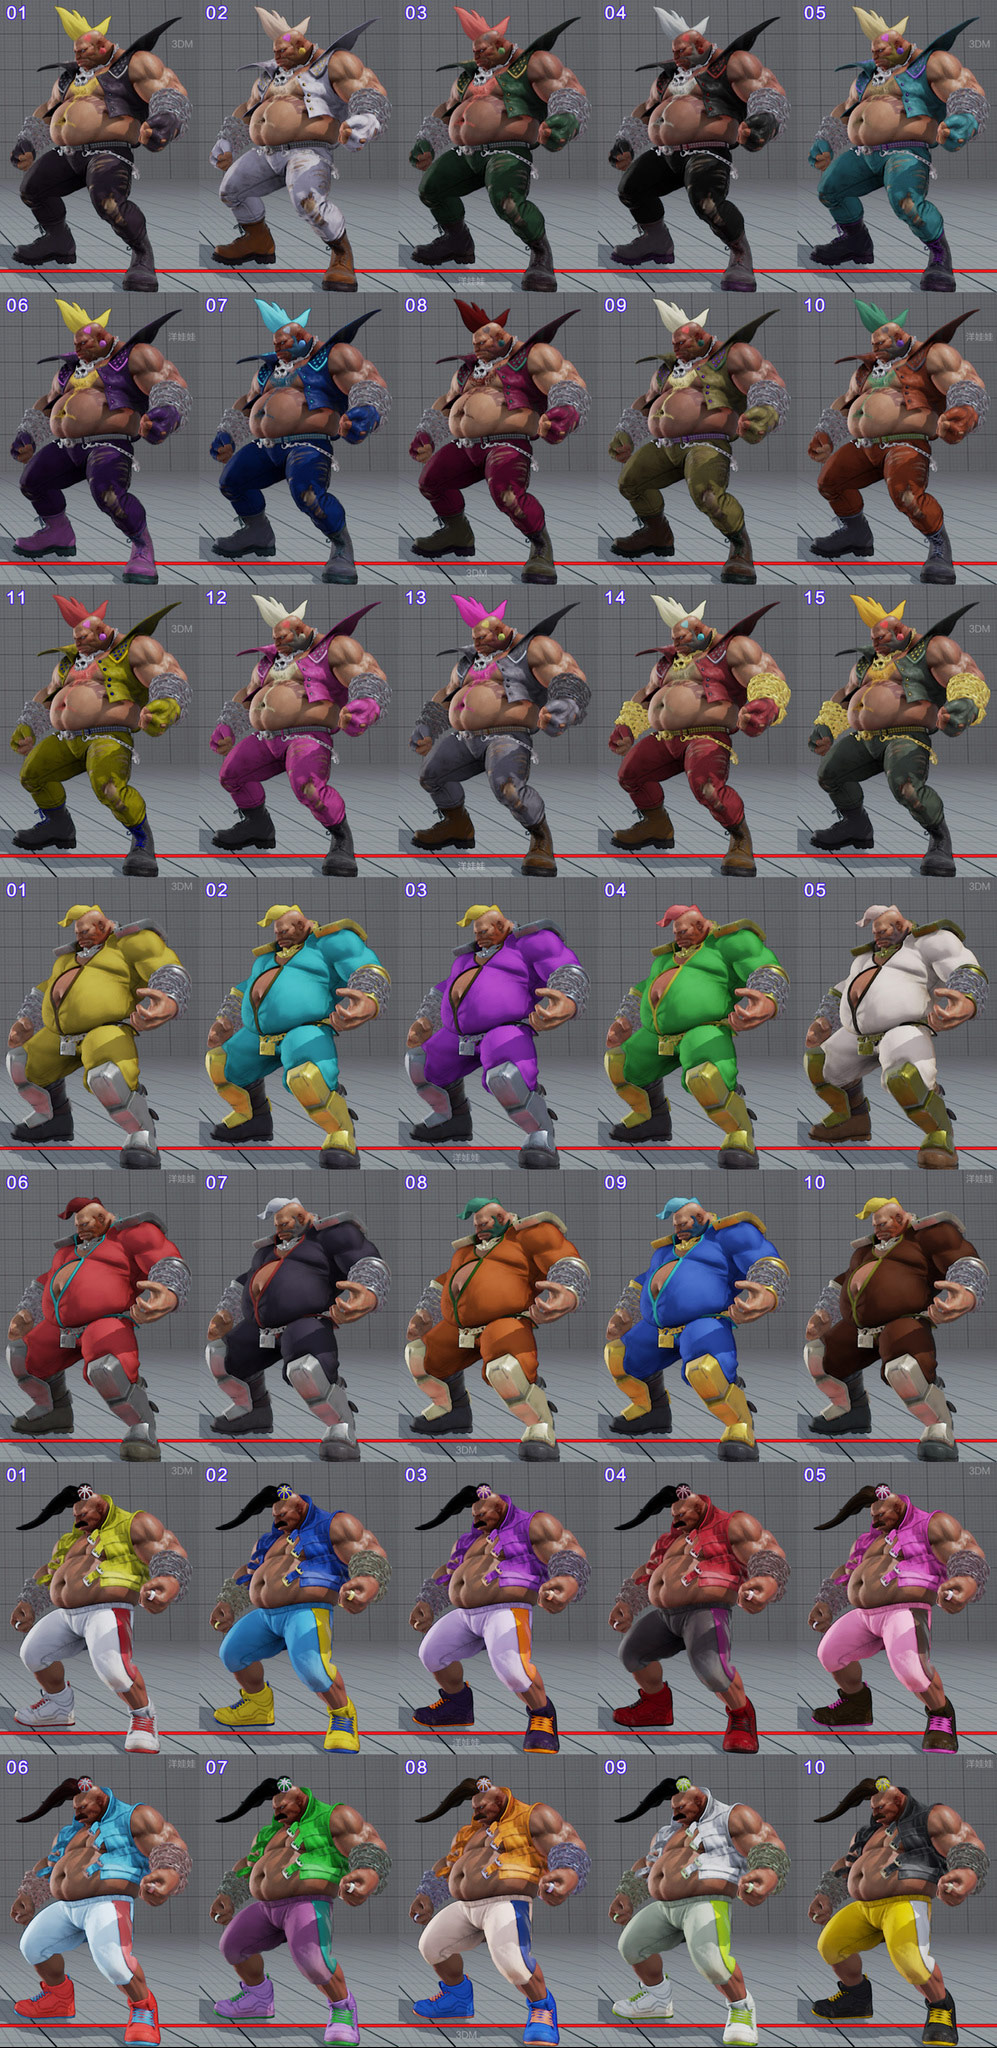 All colors for all current costumes in Street Fighter 5 3 out of 18 image gallery